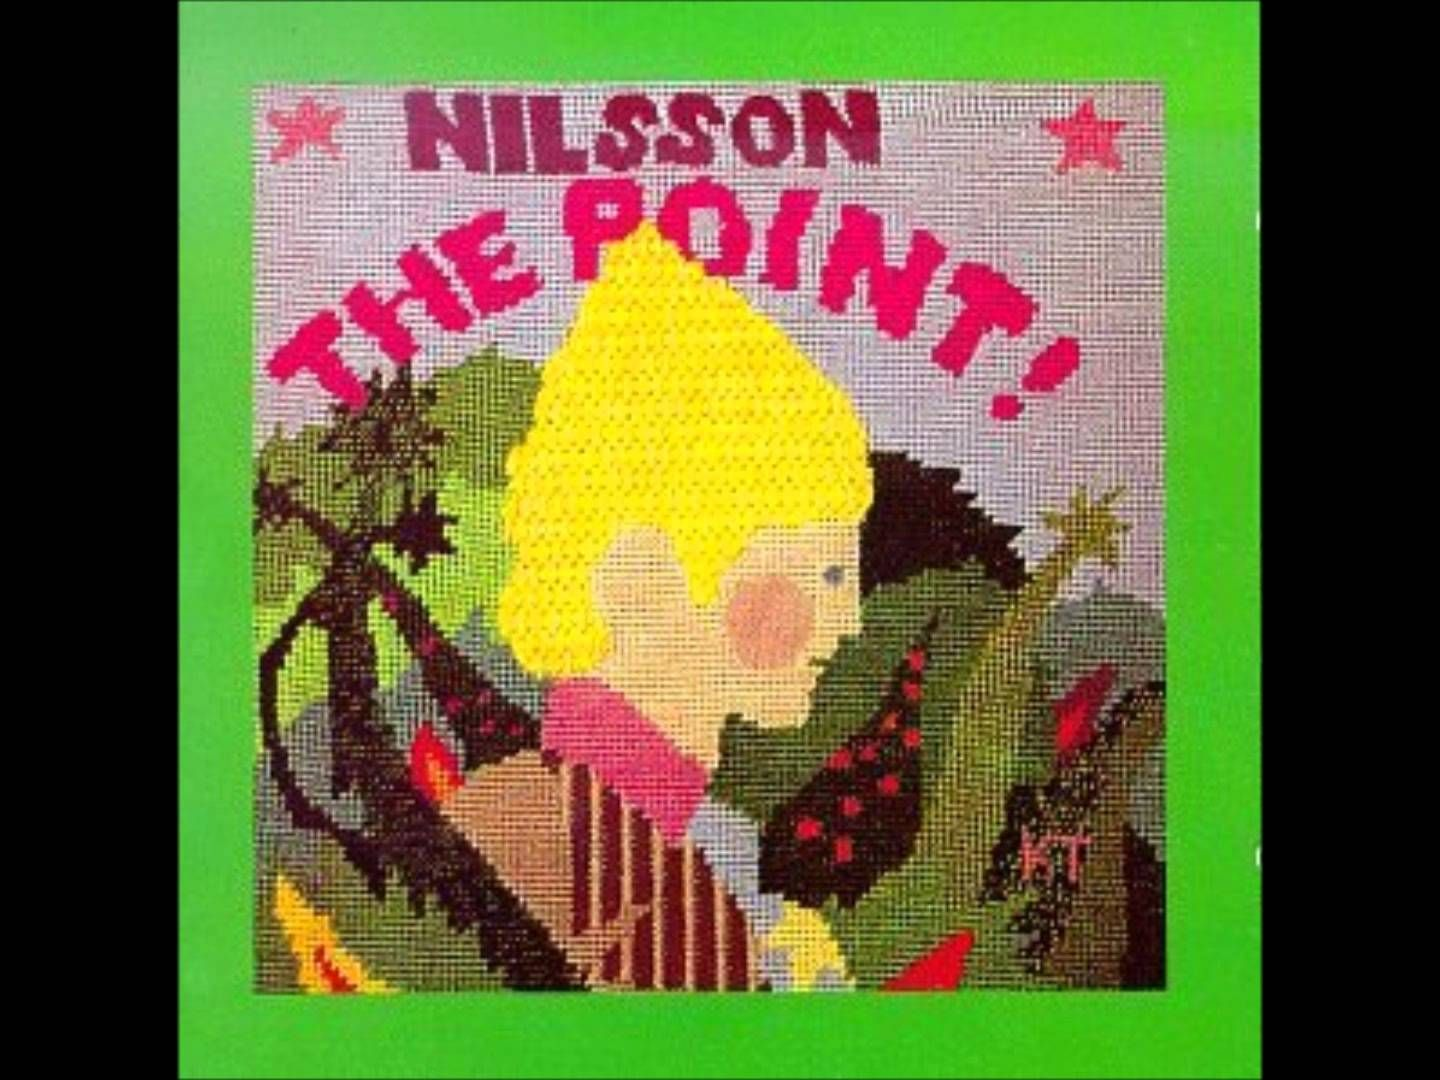 Harry Nilsson Are You Sleeping? from The Point